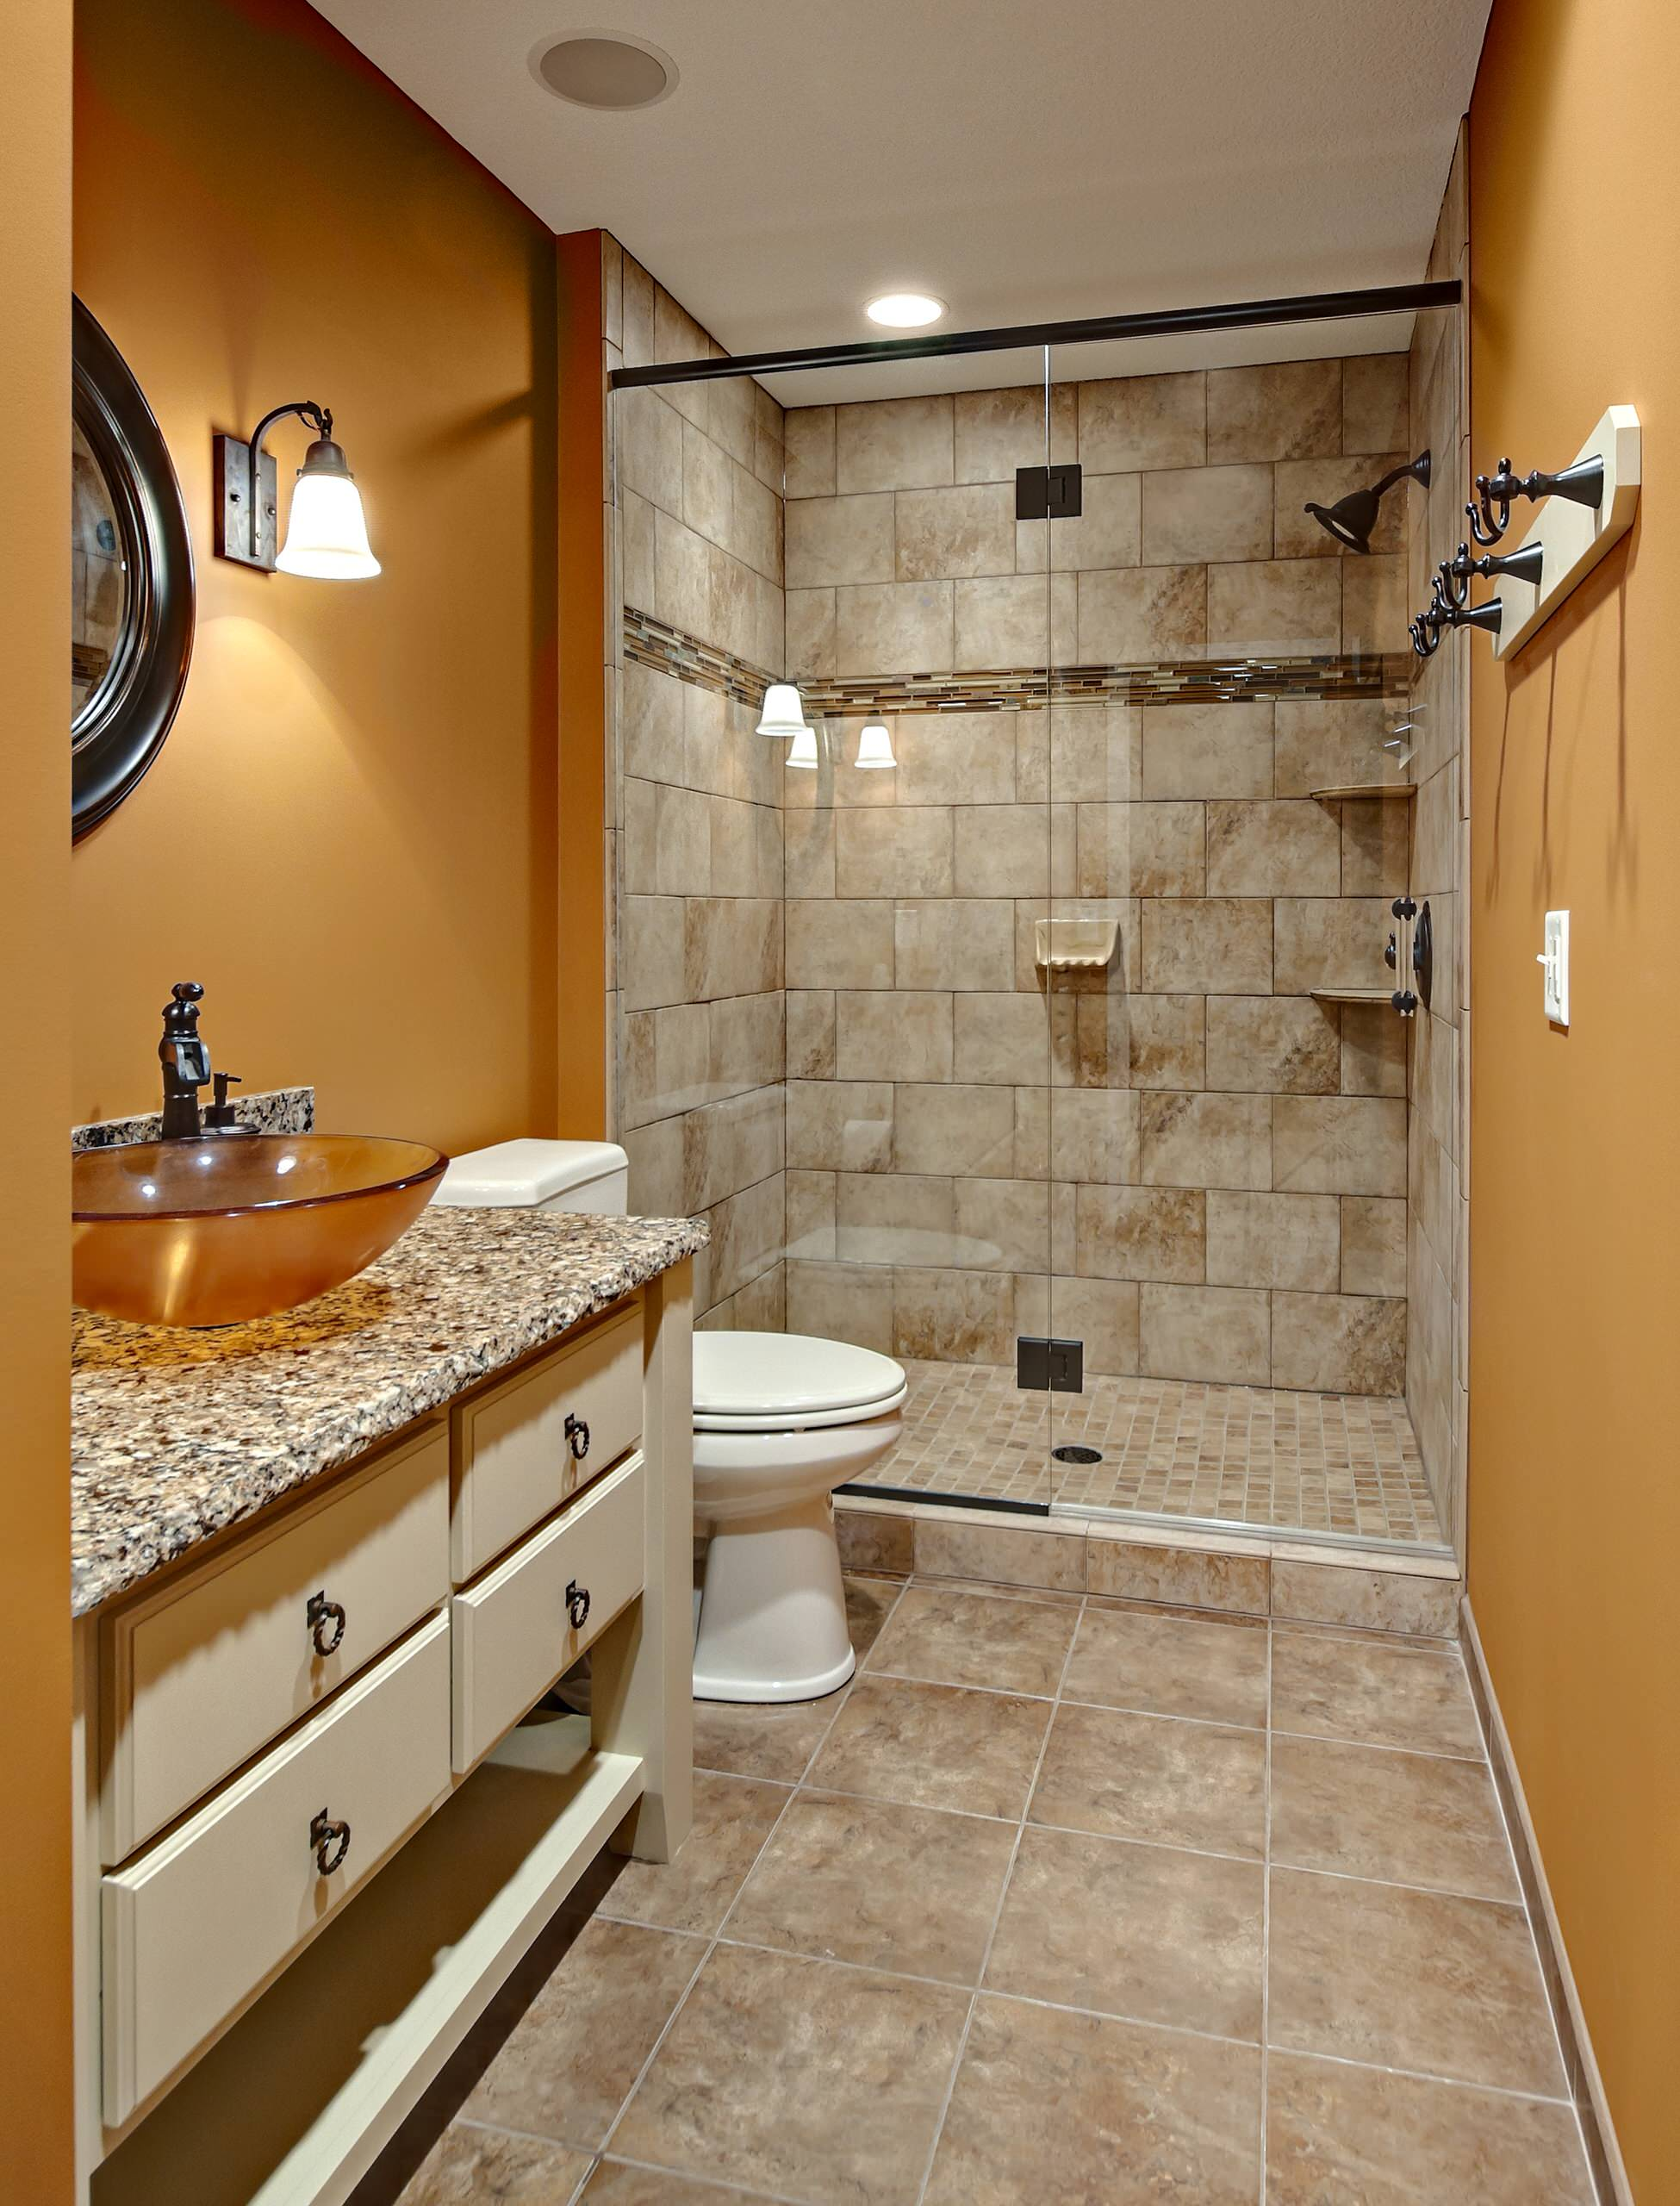 75 Beautiful Bathroom With Orange Walls Pictures Ideas January 2021 Houzz